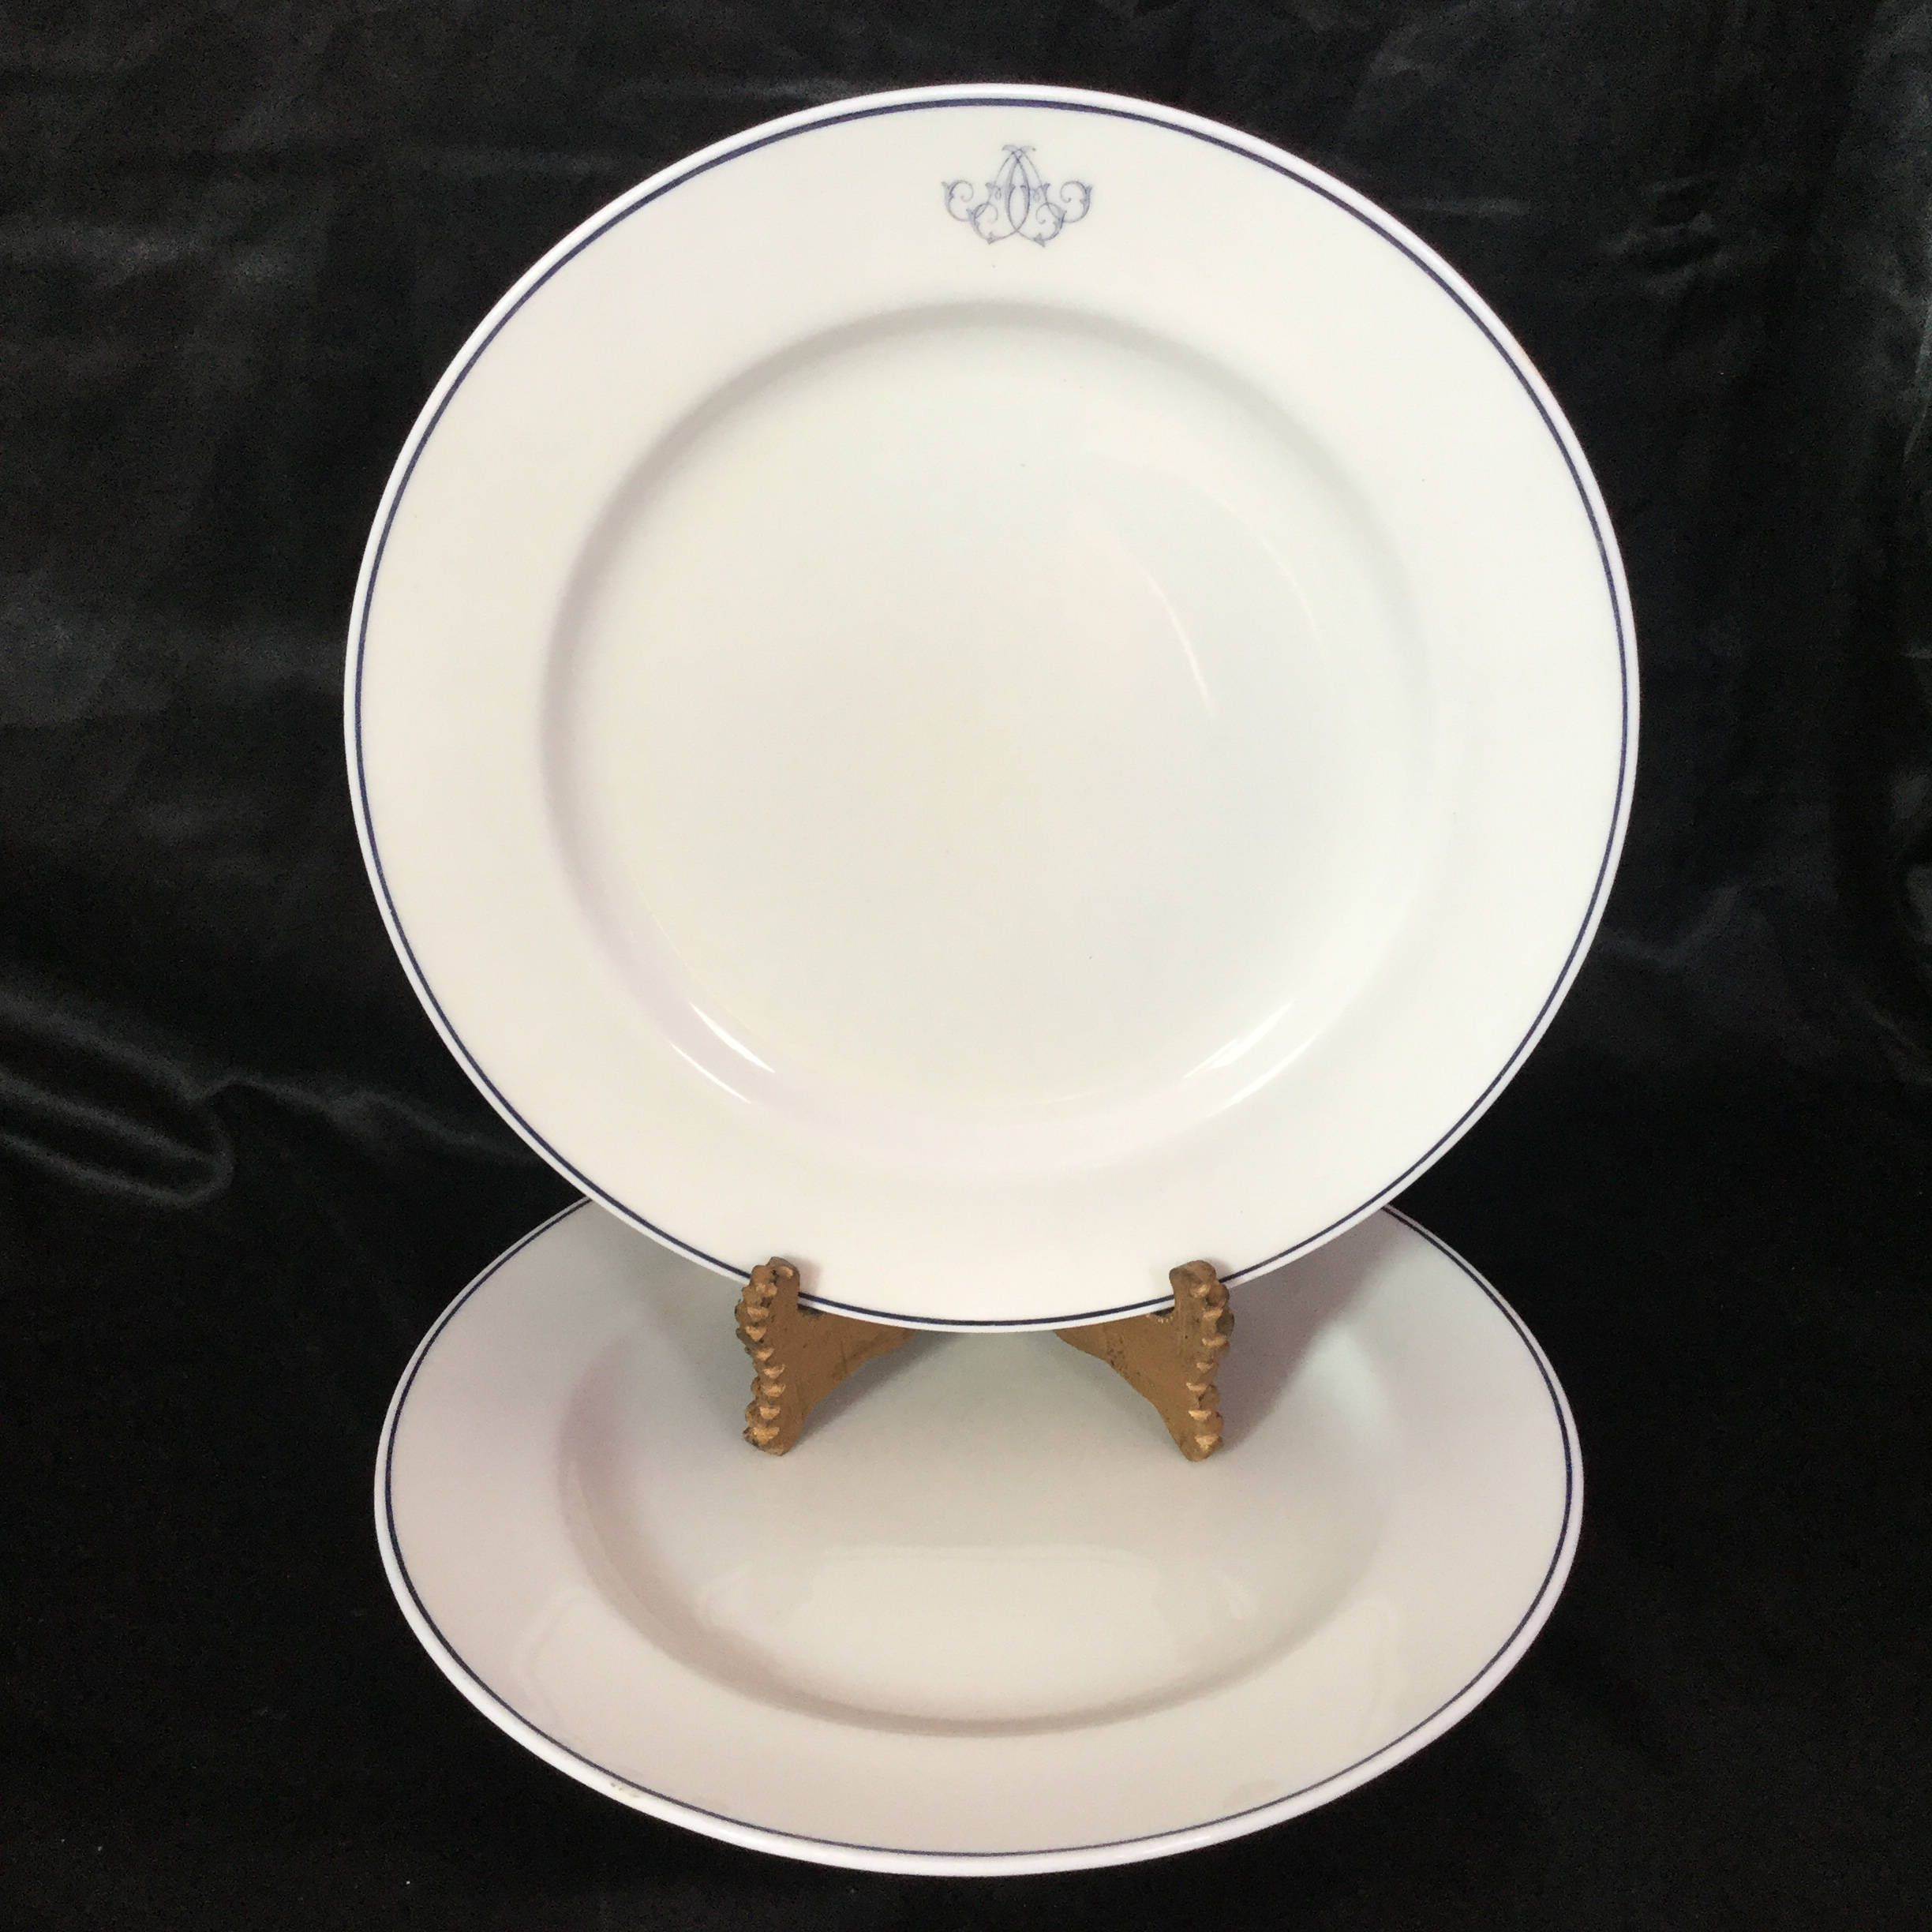 A Beautiful And Classic Minton Diner Plate Set For Two Plates Diner Unique Pottery